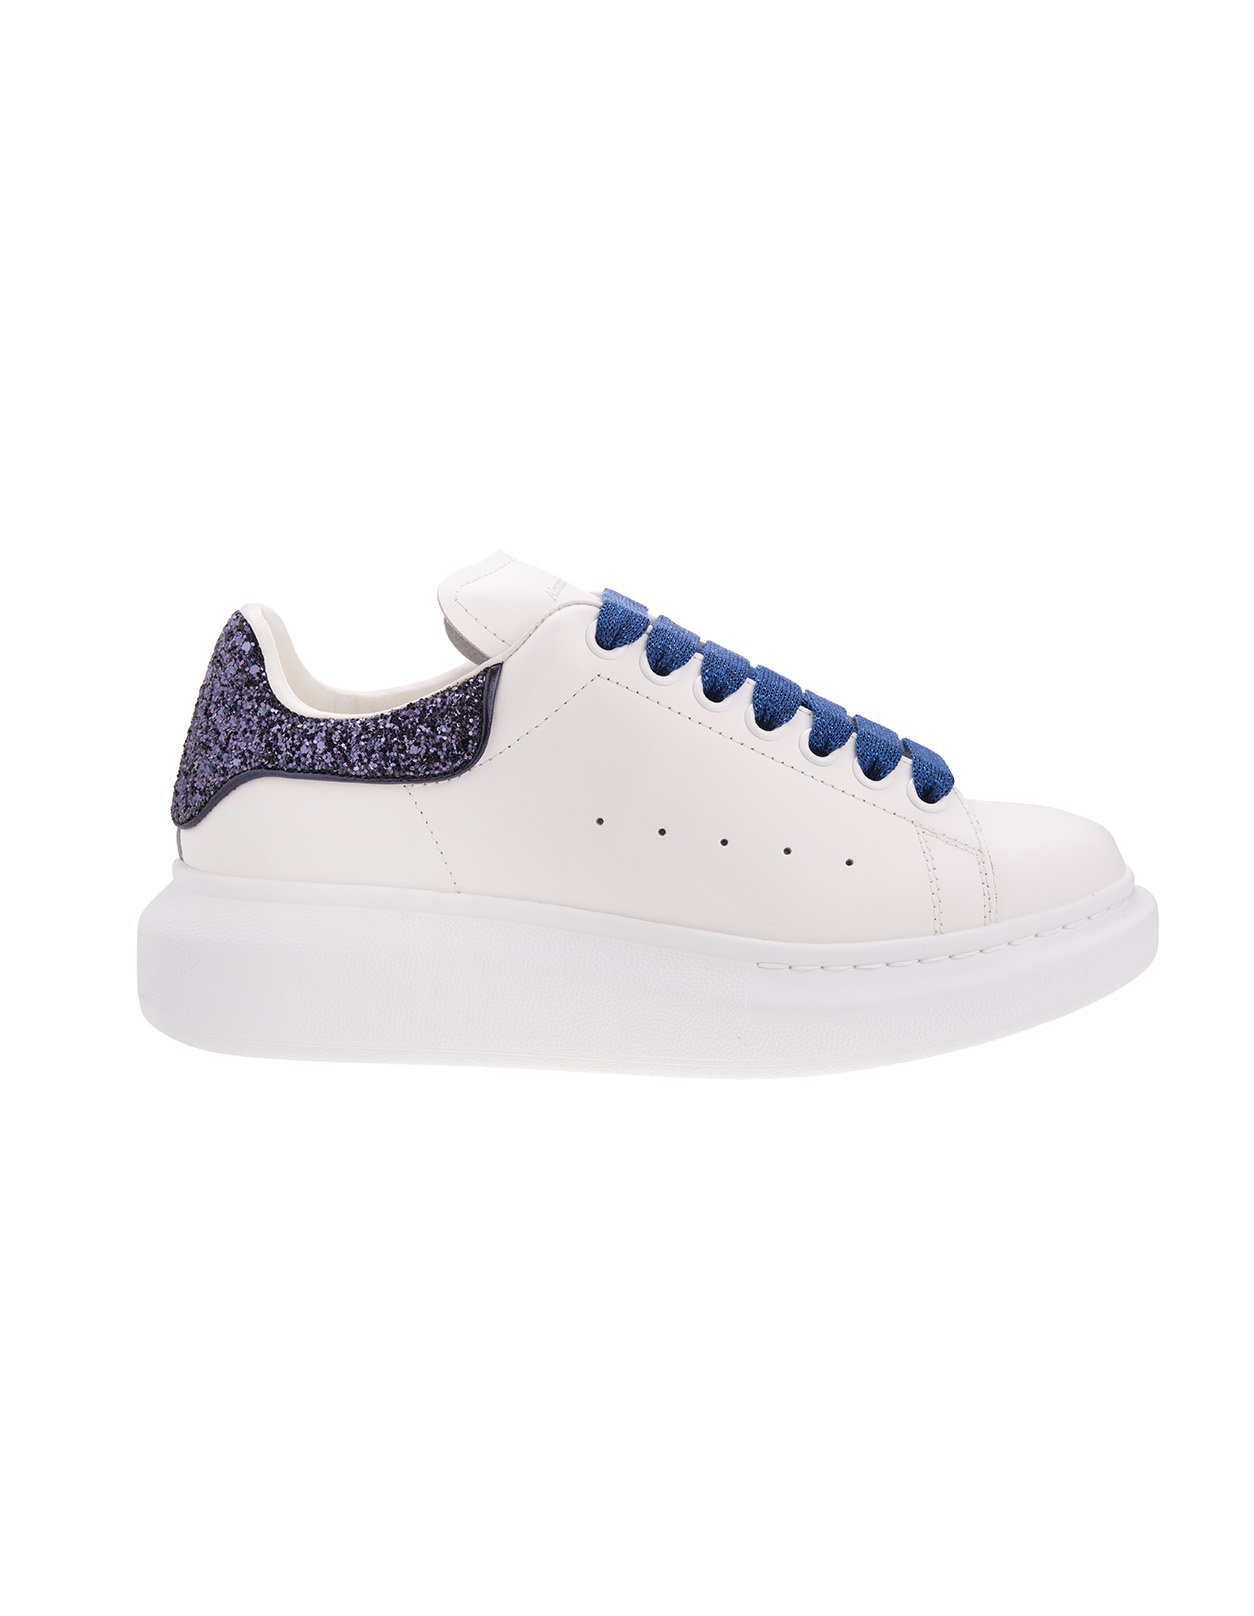 White Oversized Sneakers With Blue/Purple Glitter Details